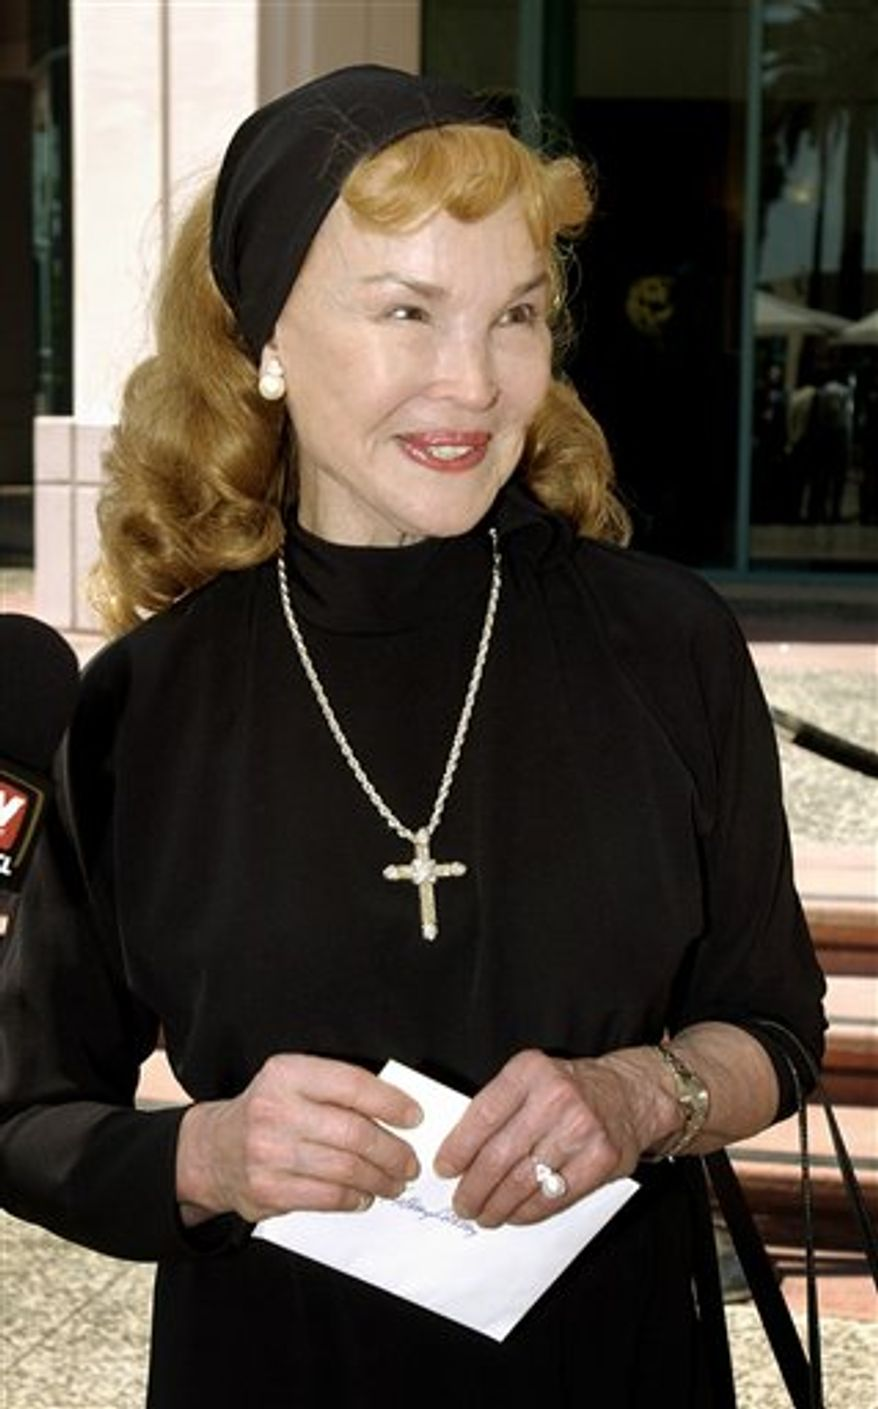 "FILE - In this Aug. 27, 2003 file photo, Kathryn Crosby,  Bing Crosby's widow, arrives for ""The Bob Hope Memorial Tribute"" show at the Academy of Television Arts and Sciences iin Los Angeles. Crosby is recovering from injuries suffered in a single vehicle traffic accident in the Sierra Nevada. Crosby, 77, suffered major injuries and her husband, Maurice William Sullivan, 85, was killed in the Nov. 4 accident on U.S. 50 east of Placerville, Calif., California Highway Patrol spokesman Dan Stark said today. (AP Photo/Reed Saxon, file)"